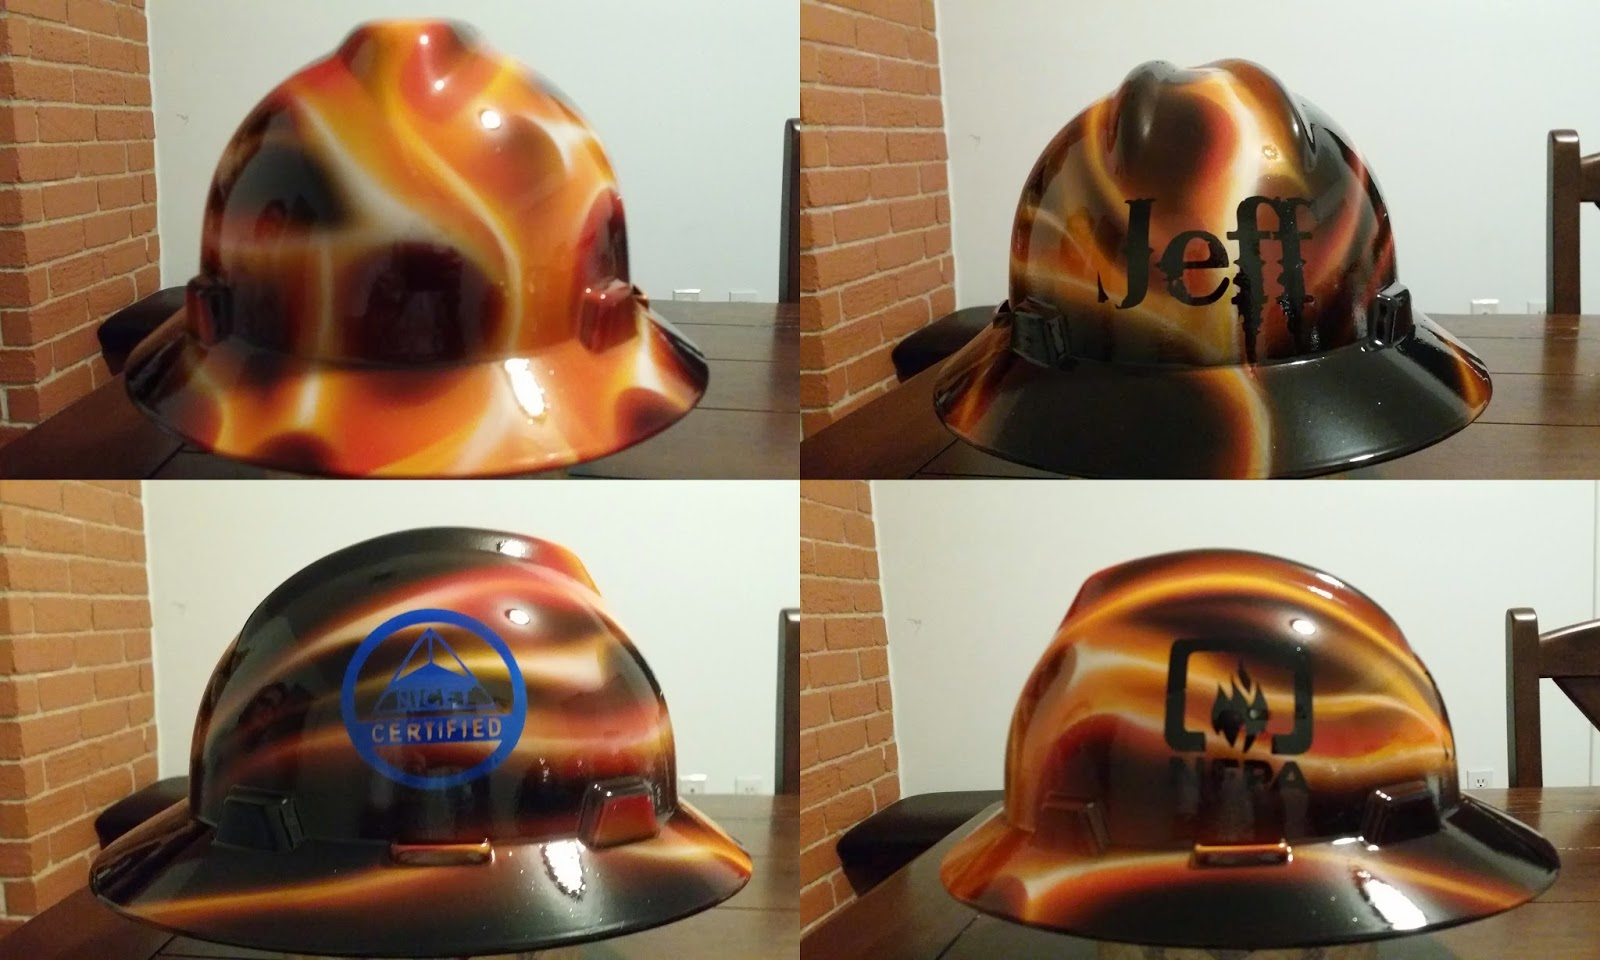 Fire suppression true flames hard hat custom design and painted by ZimmerDesignZ.com